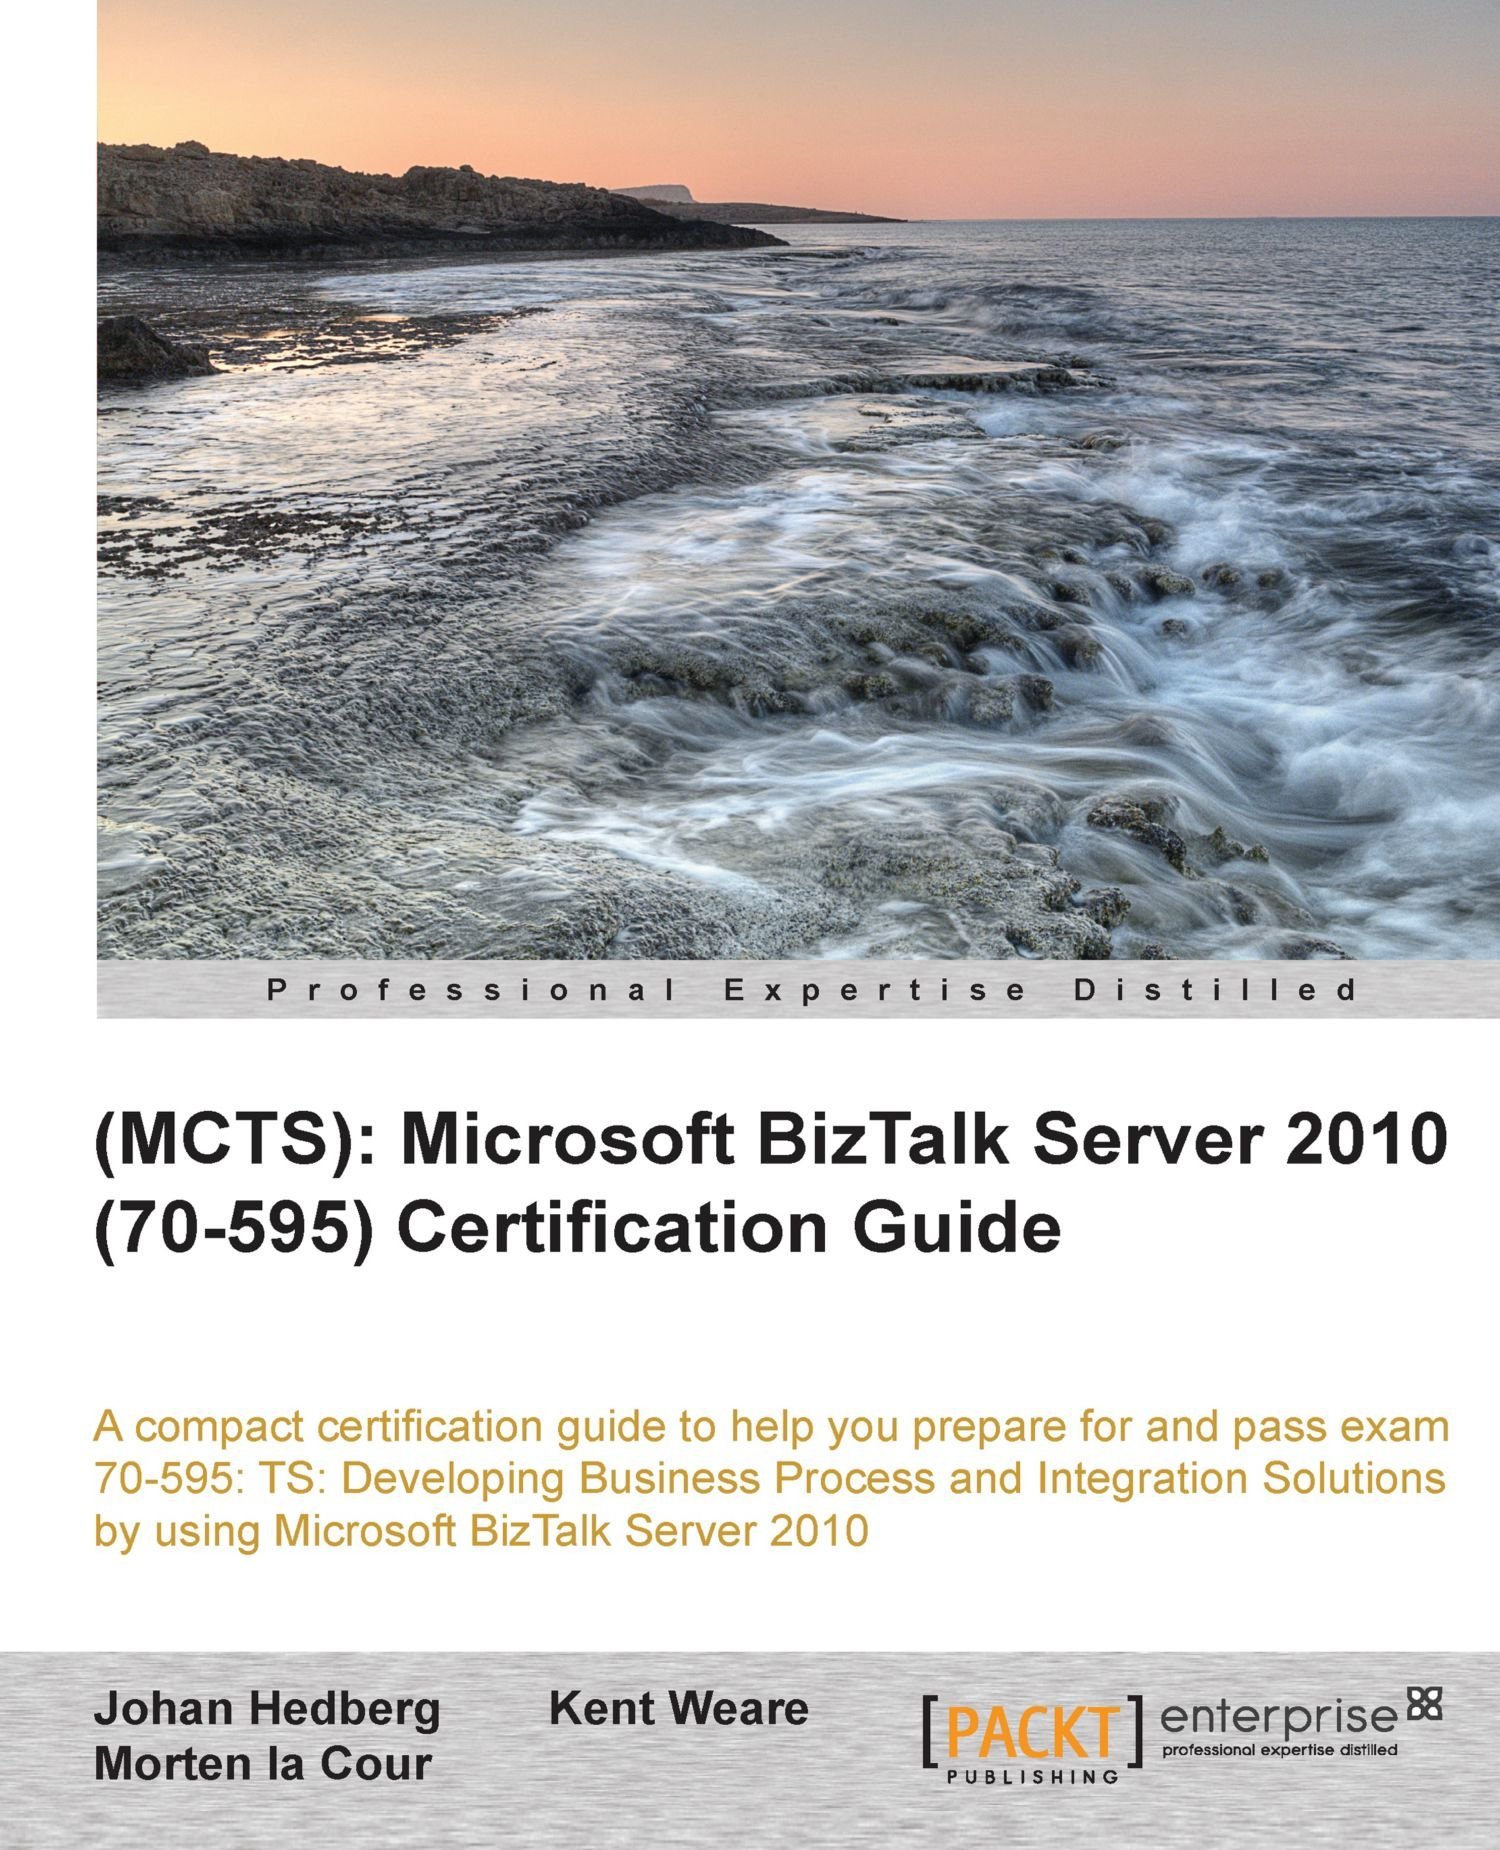 Mcts microsoft biztalk server 2010 70 595 certification guide mcts microsoft biztalk server 2010 70 595 certification guide johan hedberg kent weare morten la cour 9781849684927 amazon books xflitez Image collections